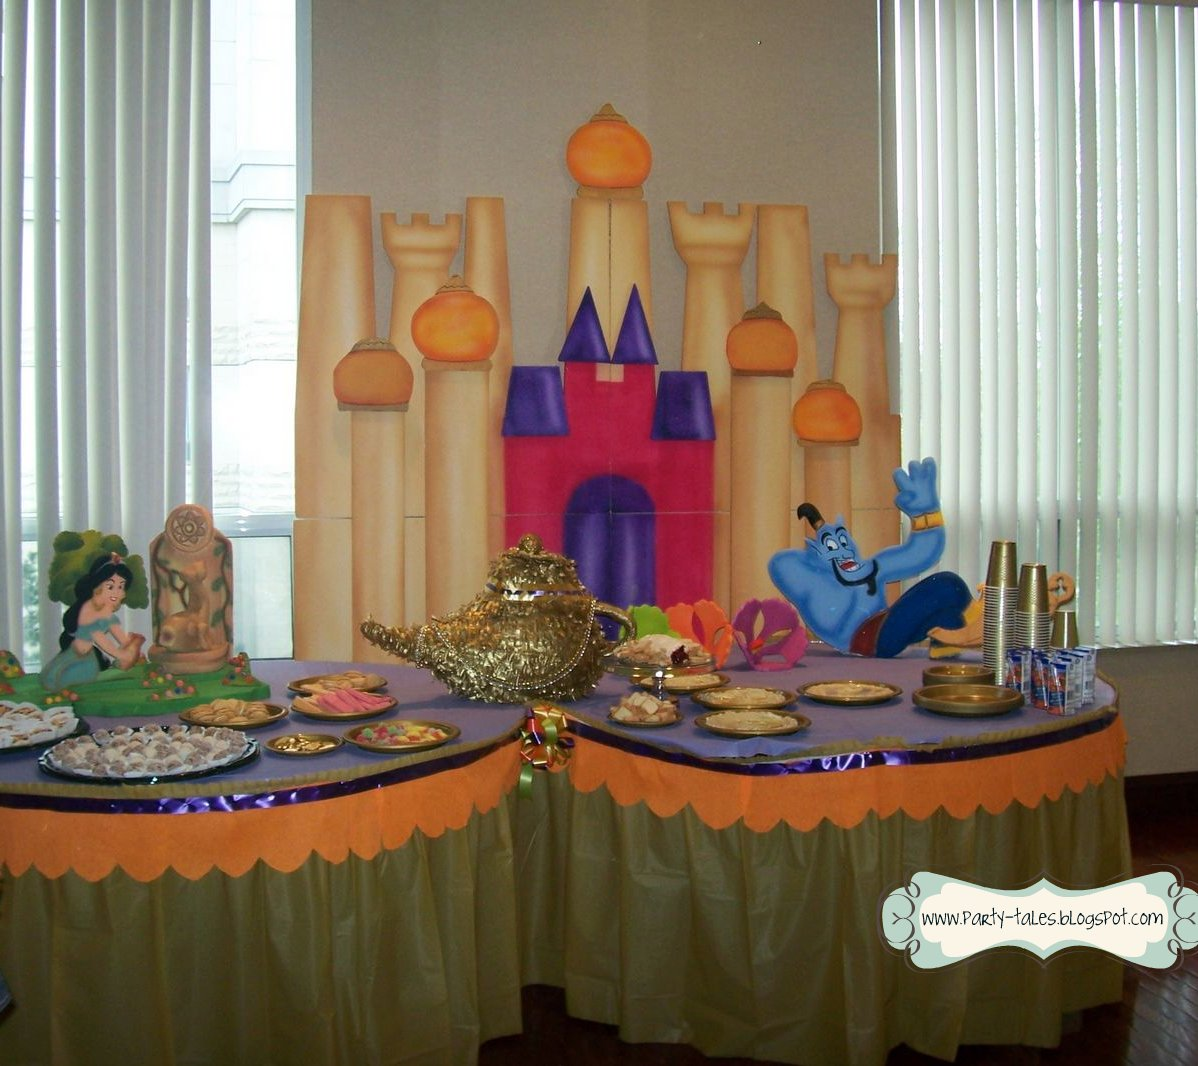 Party tales birthday party jasmine and aladdin a for Aladdin decoration ideas